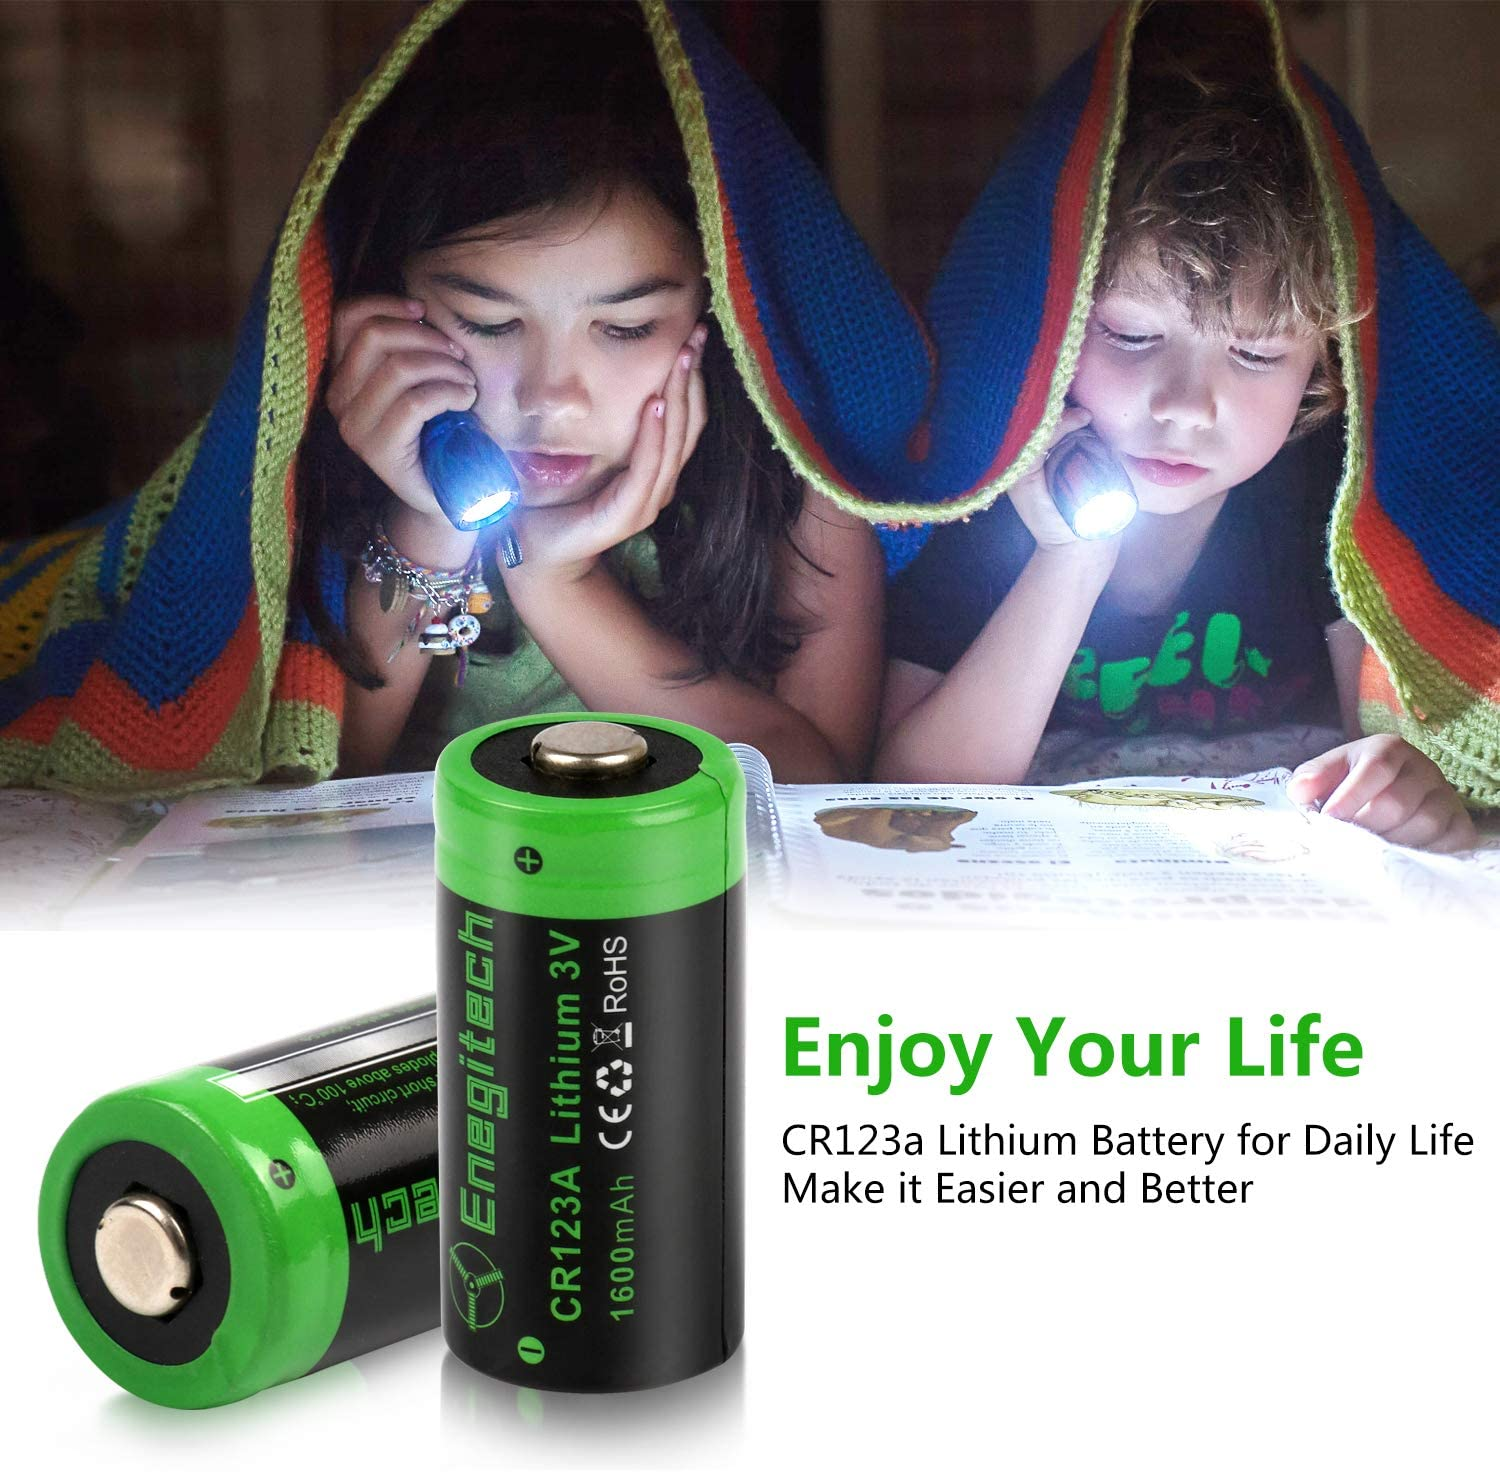 CR123A 3V Lithium Battery Enegitech Upgrade 1600mAh 12Pack CR123A Batteries Non-Rechargeable with PTC Protection for Photo Camera Flashlight Torch Microphones